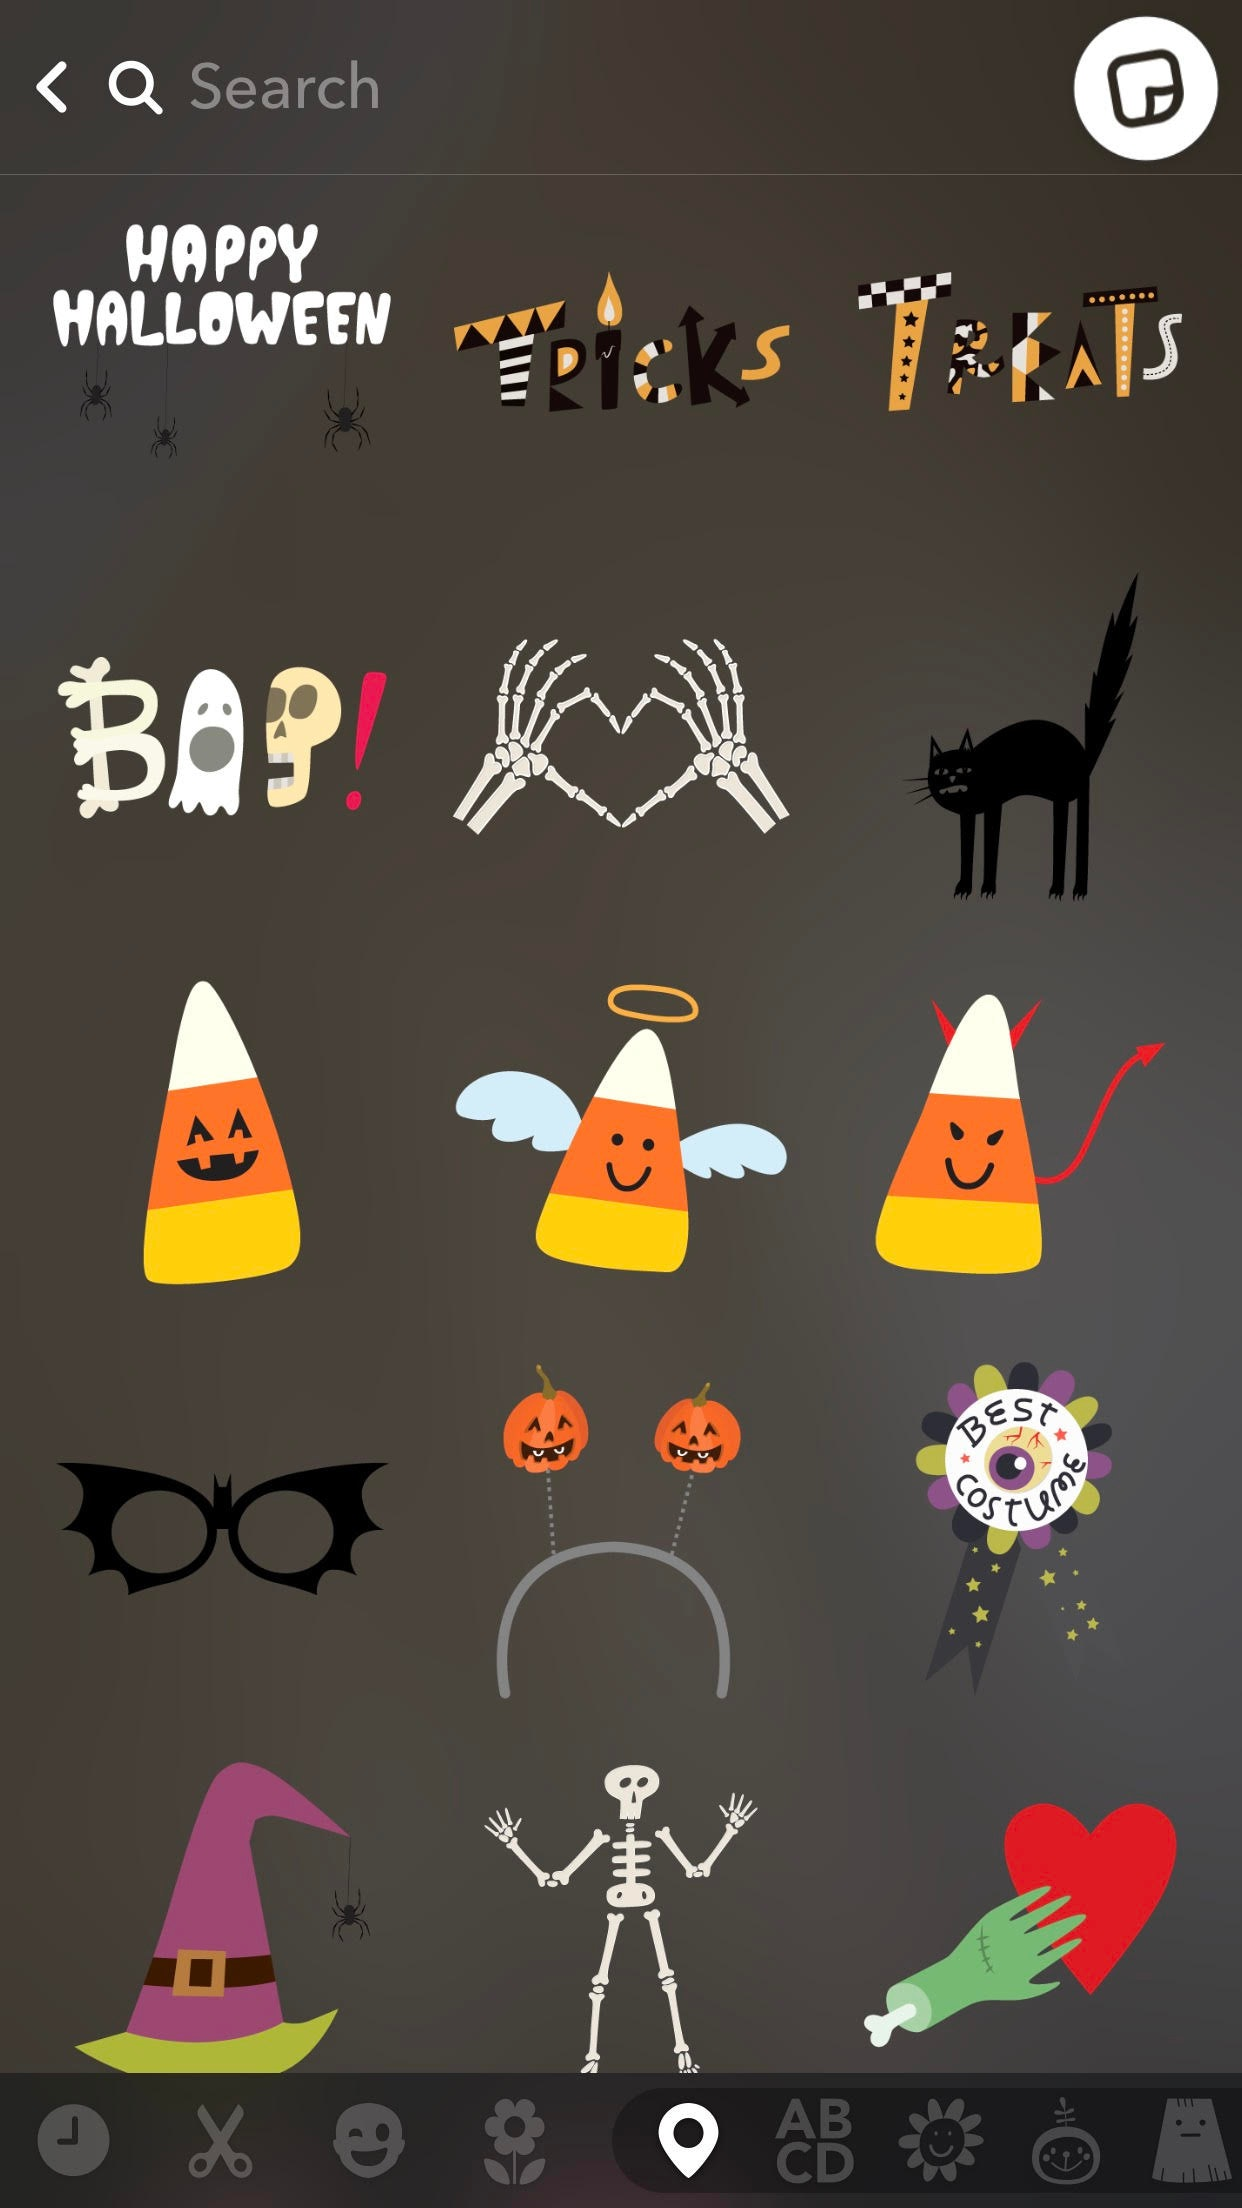 Halloween Stickers Aesthetic.How To Use Halloween Bitmojis On Snap Map For Spooky Updates